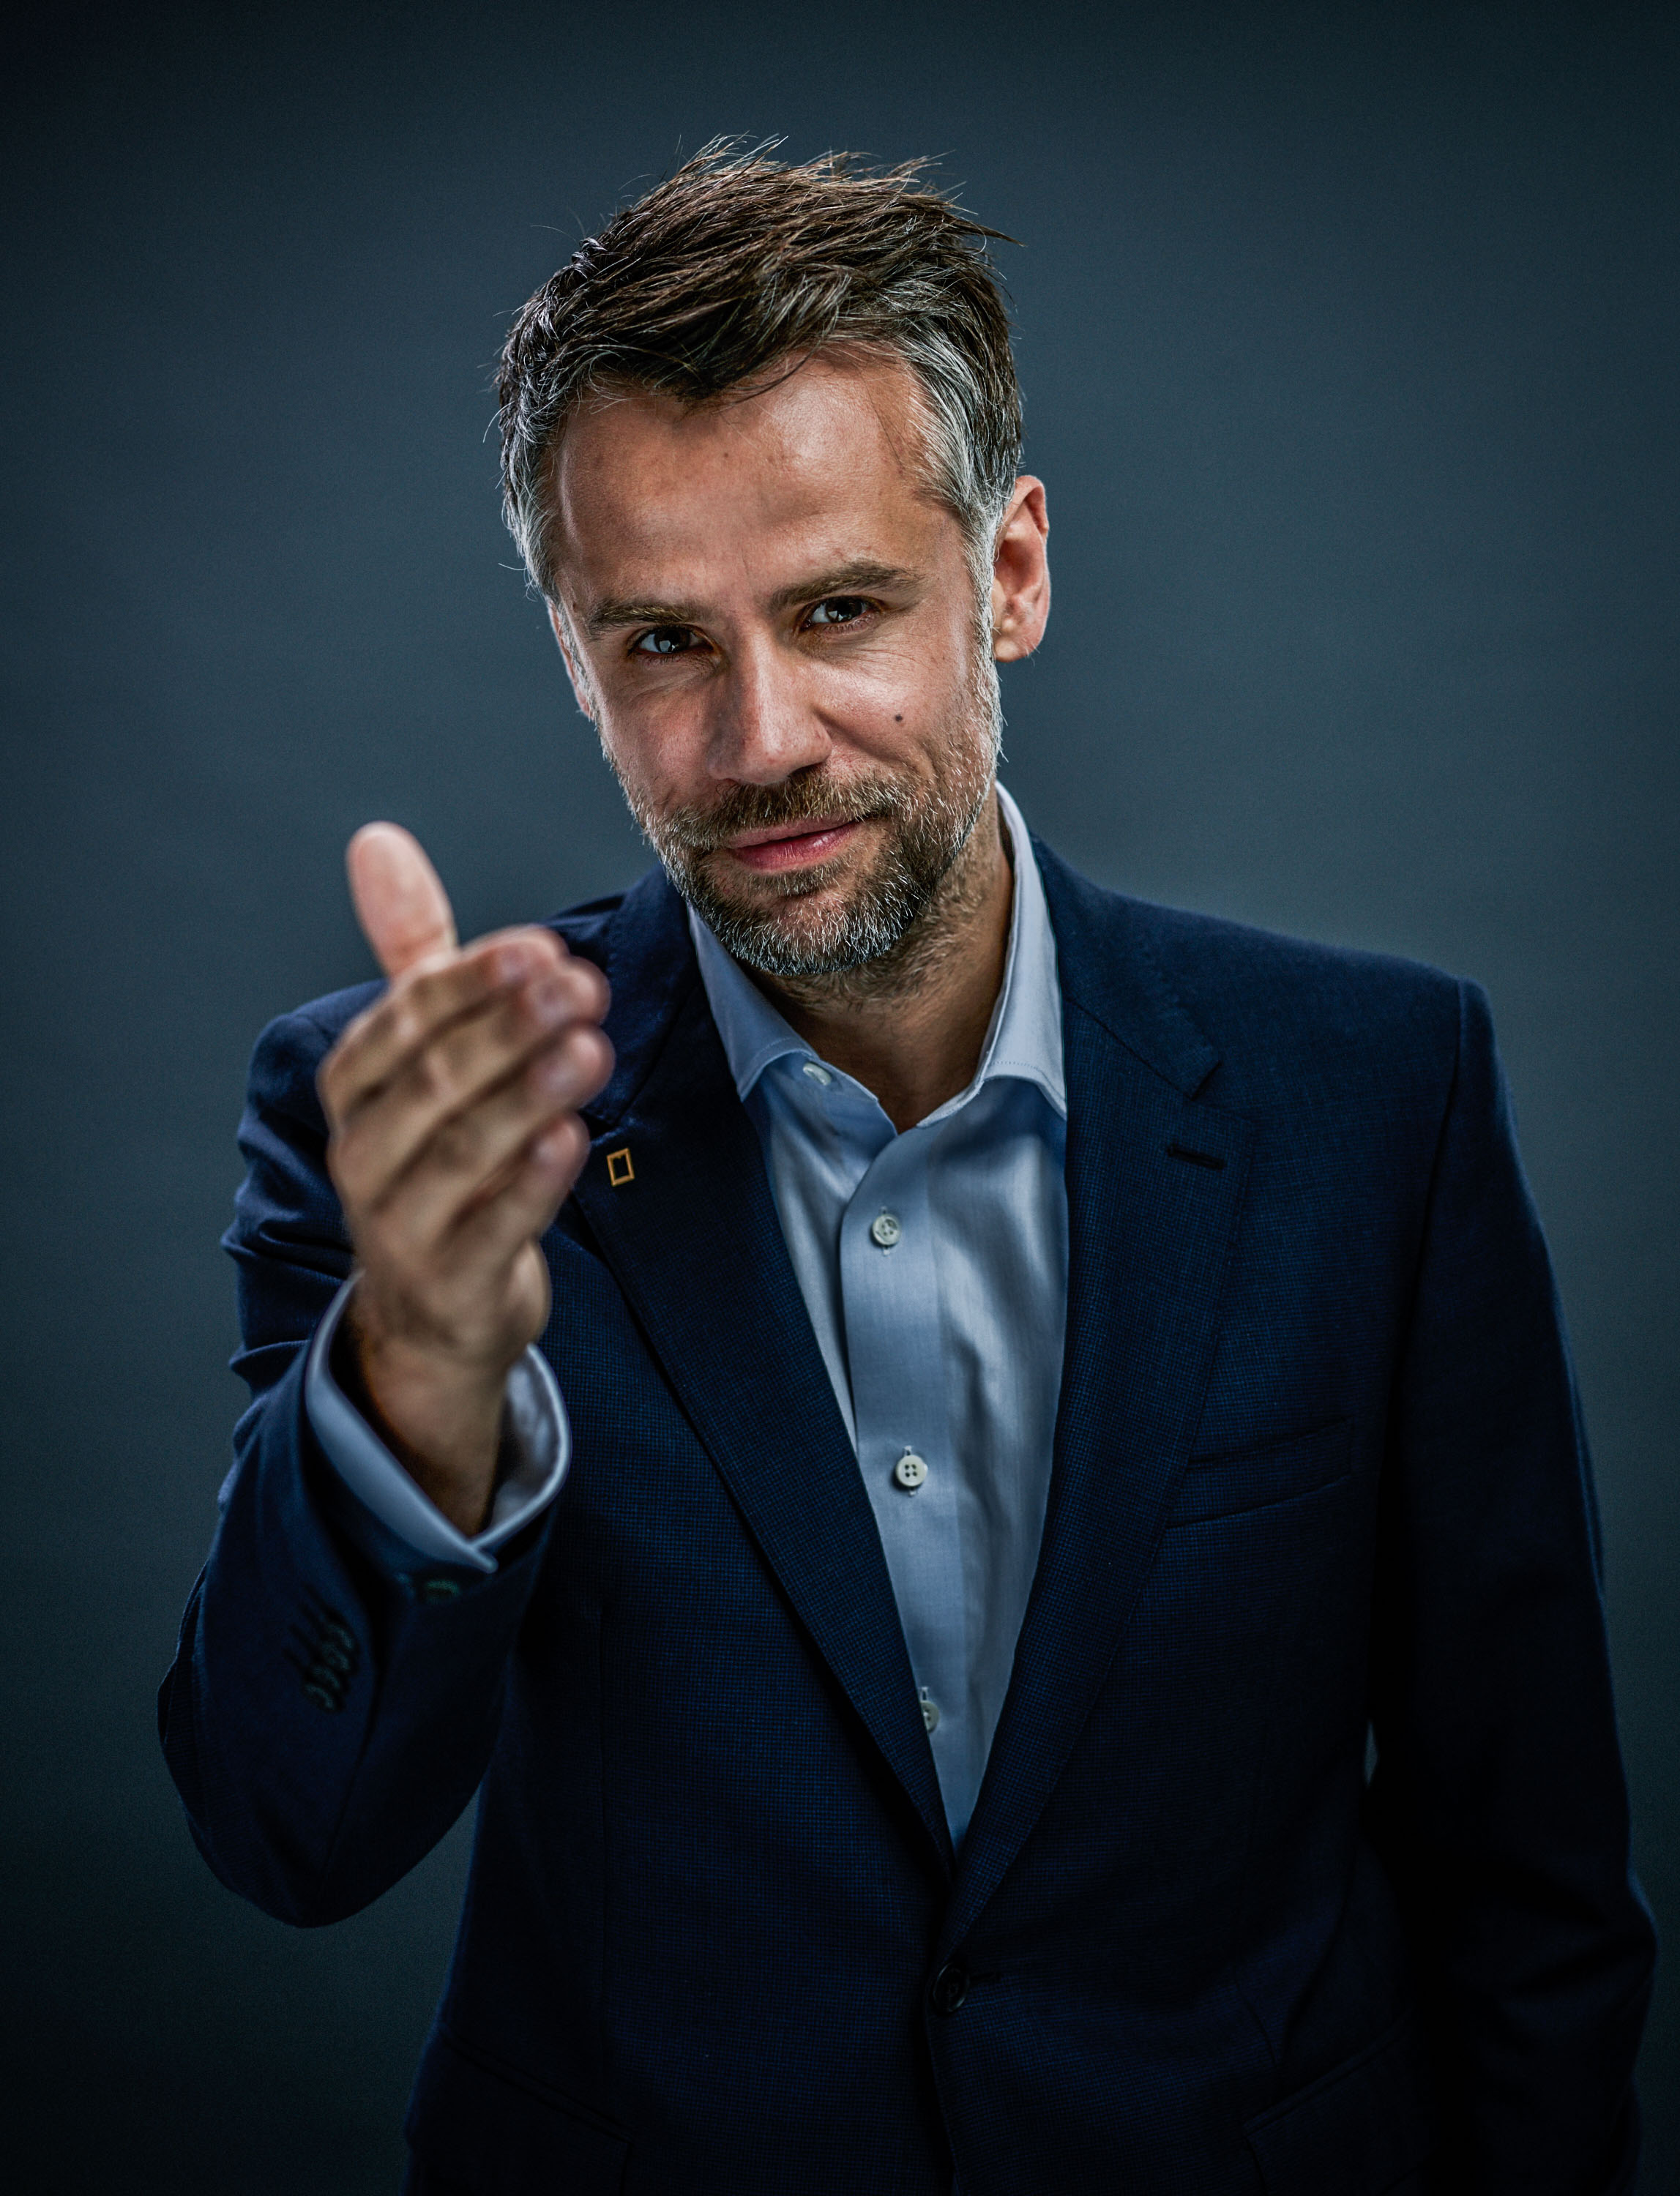 20160927-01_RichardBacon_130.jpg